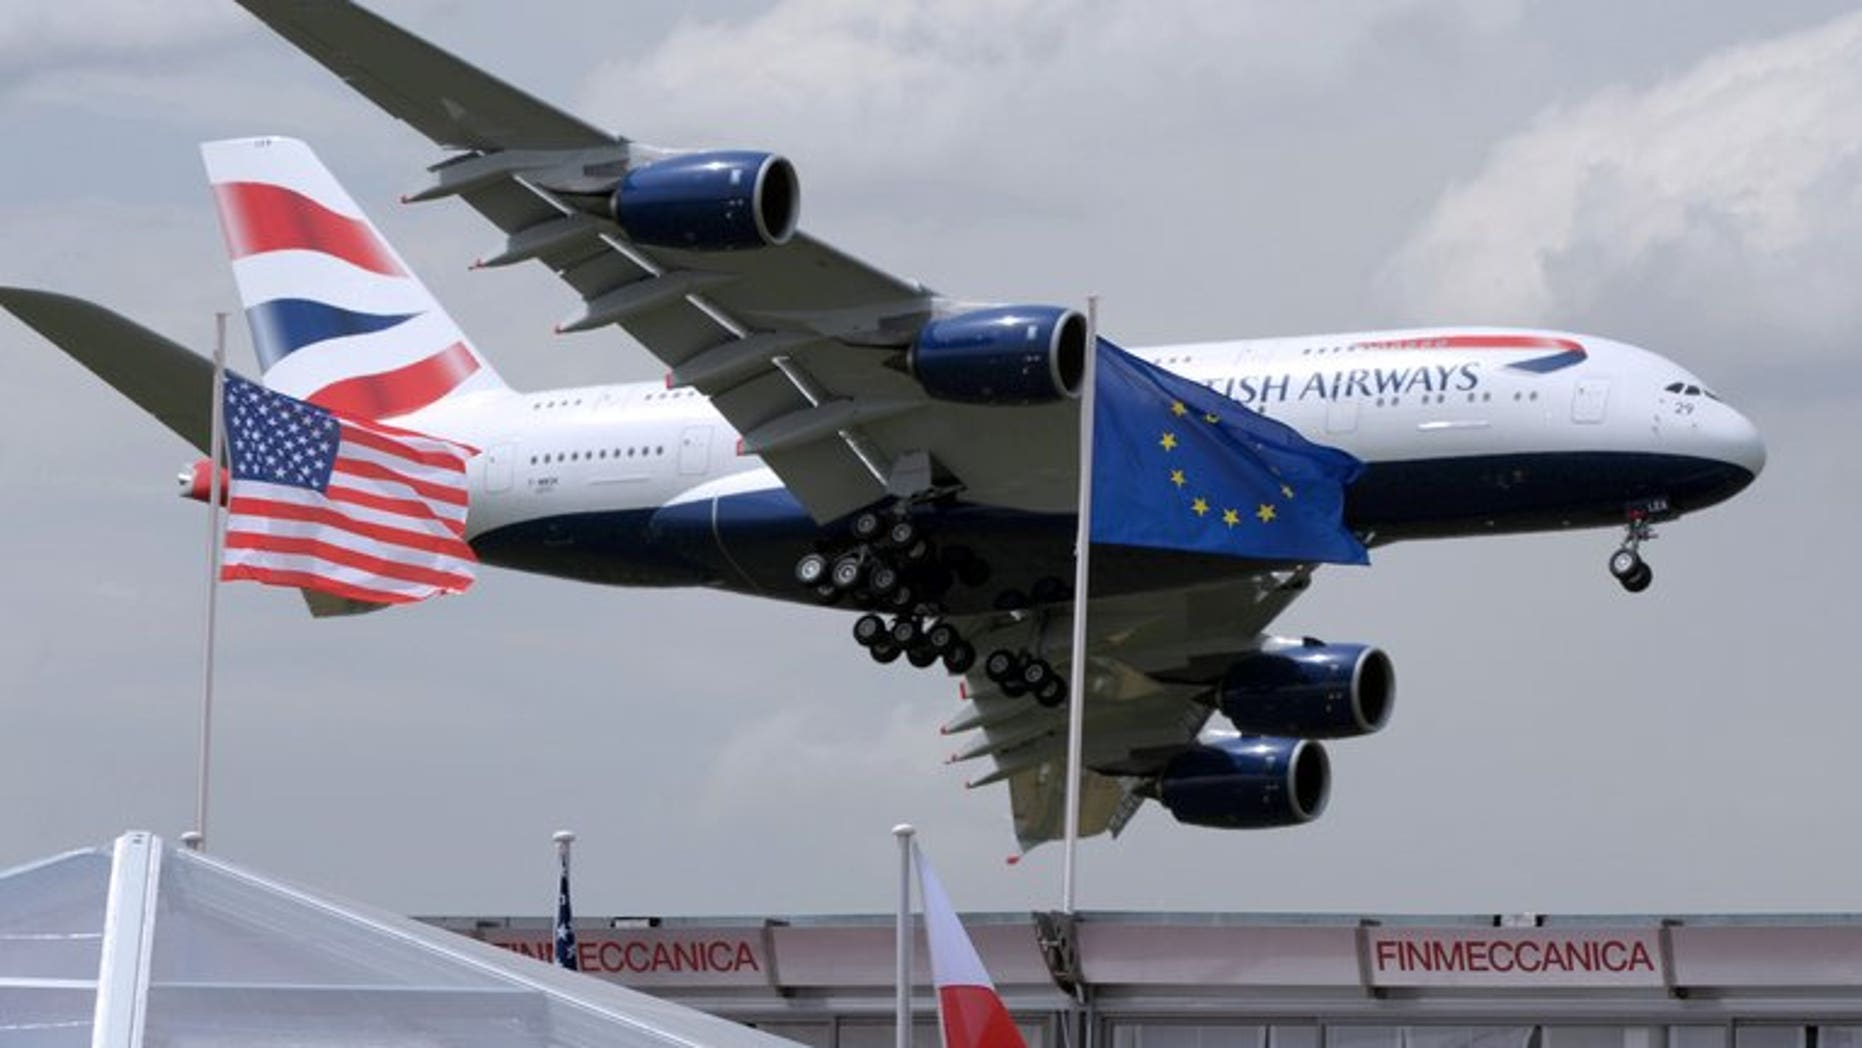 A British Airways Airbus A380 lands after a display at Le Bourget airpor, near Paris.